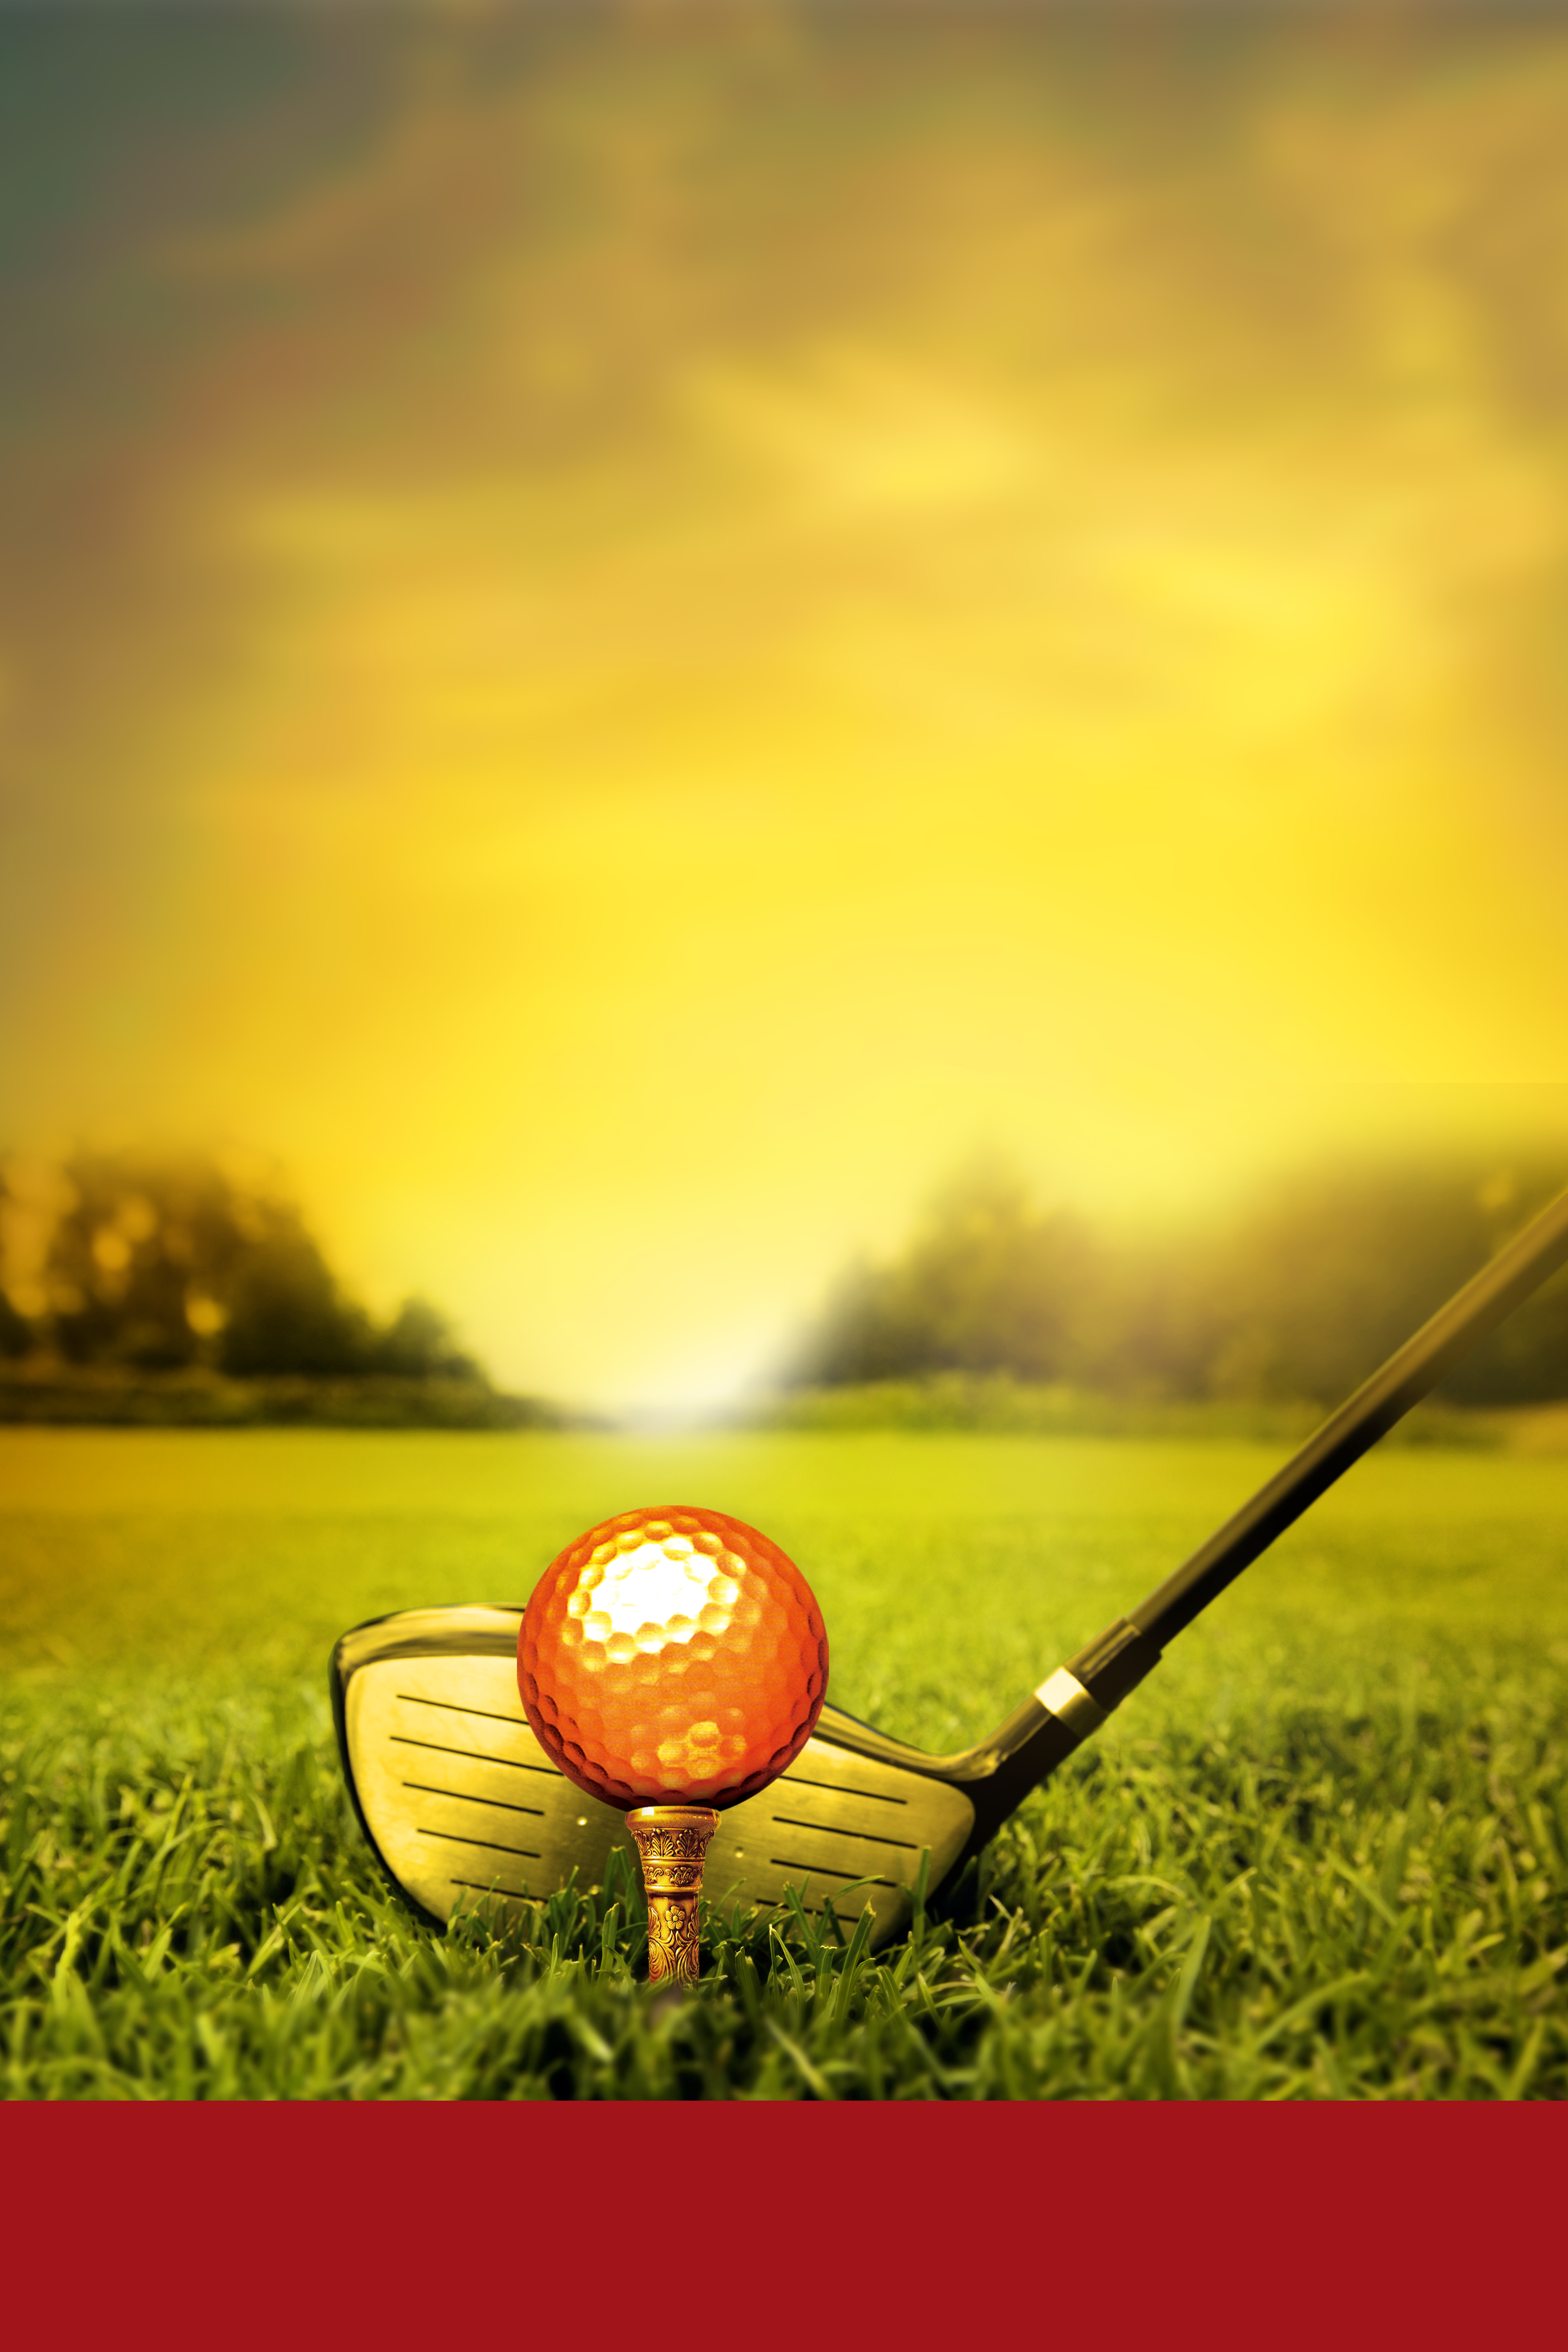 Fall Brithday Wallpaper Golf Poster Background Material Posters Poster Yellow